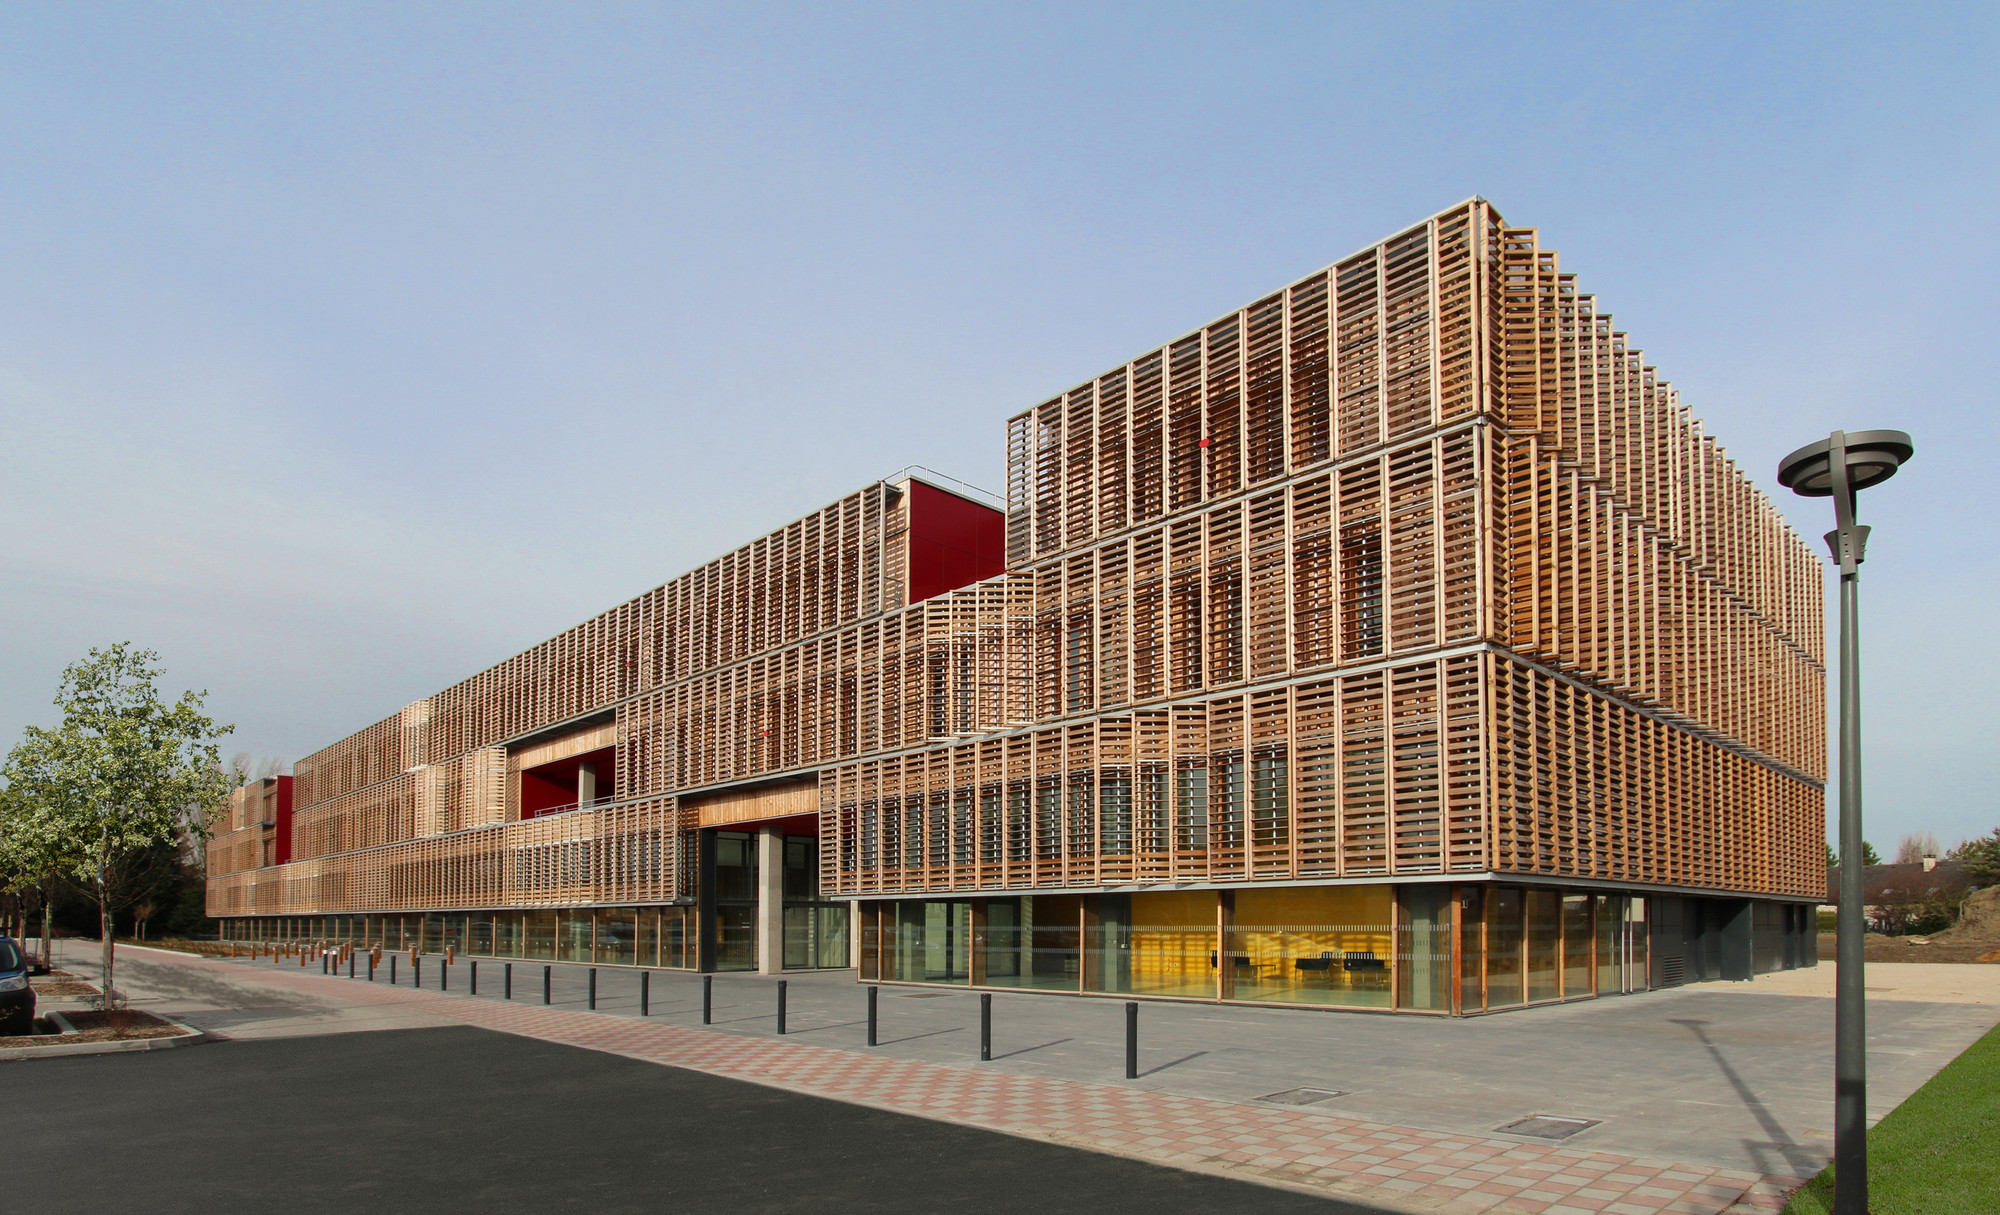 Compiègne Univeristy of Technology / Ameller, Dubois & Associés